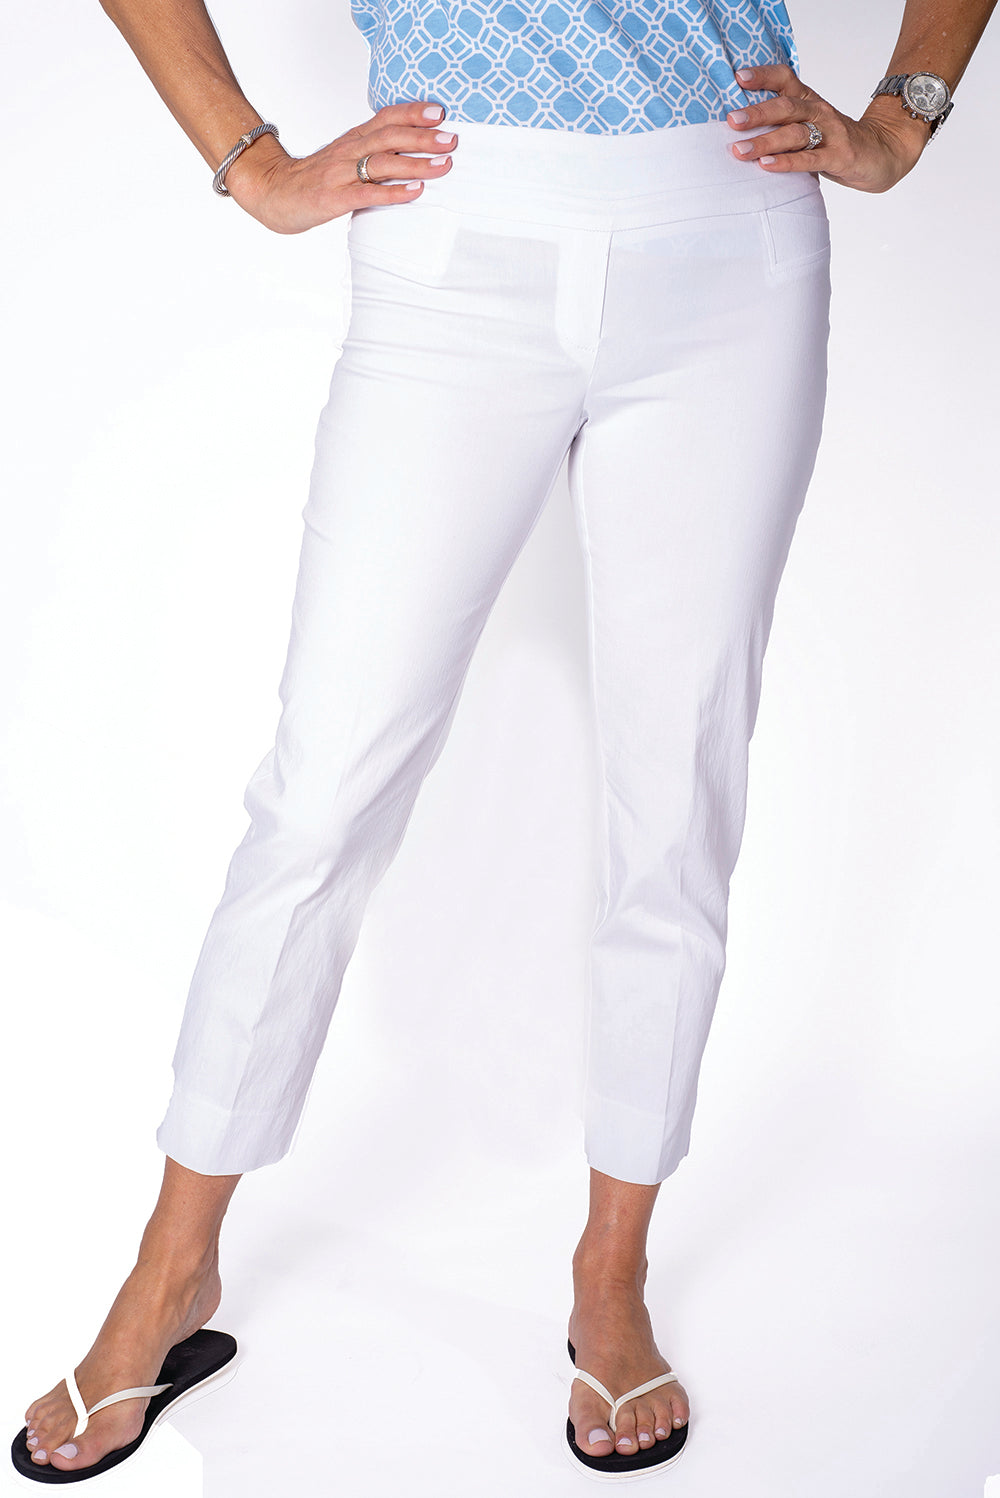 Ladies Ankle Pant White 000 - Leonlevin